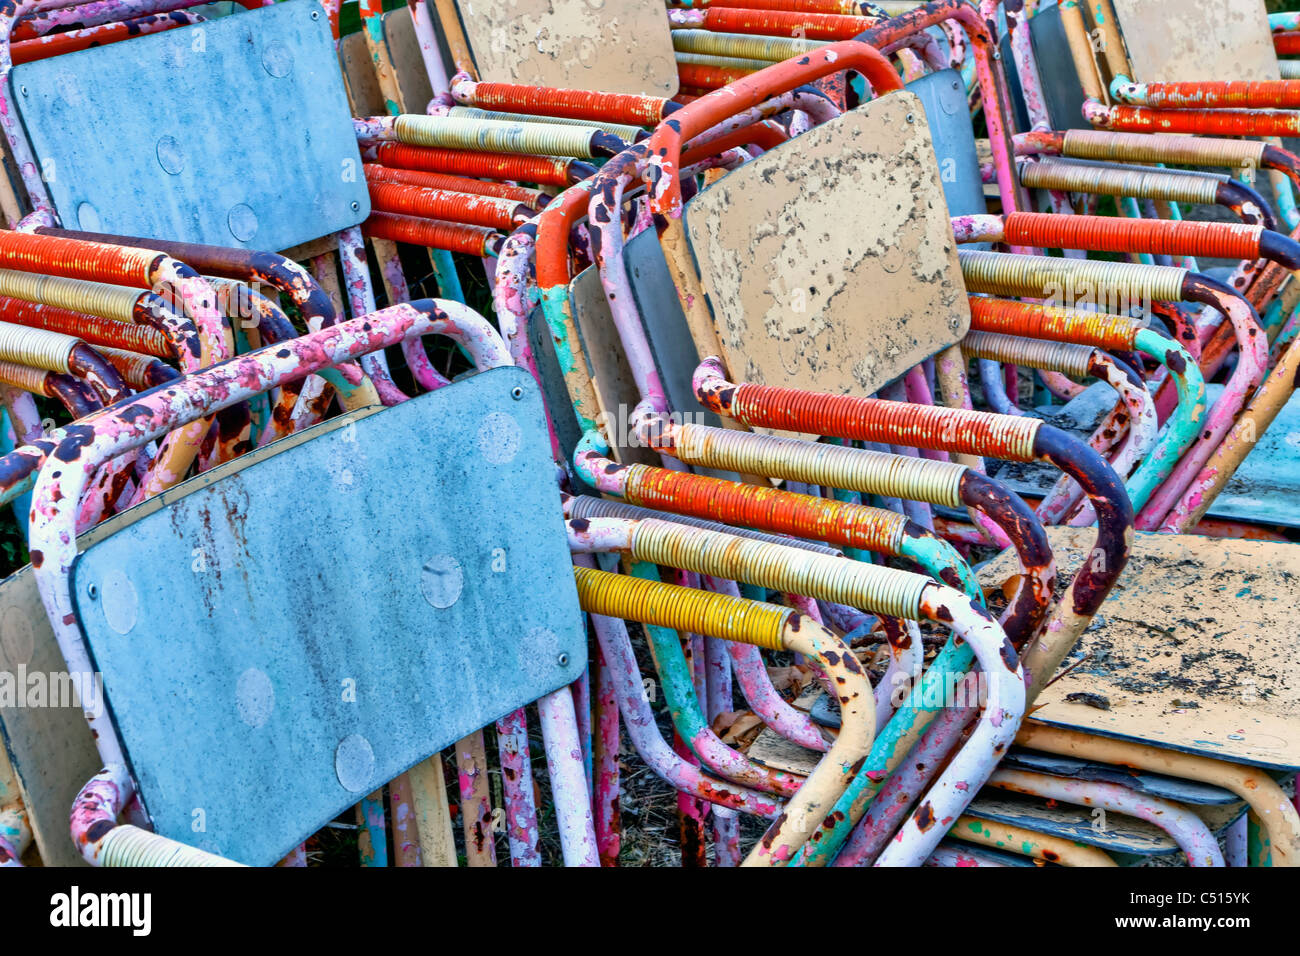 Colourful and rusty old chairs stacked - Stock Image